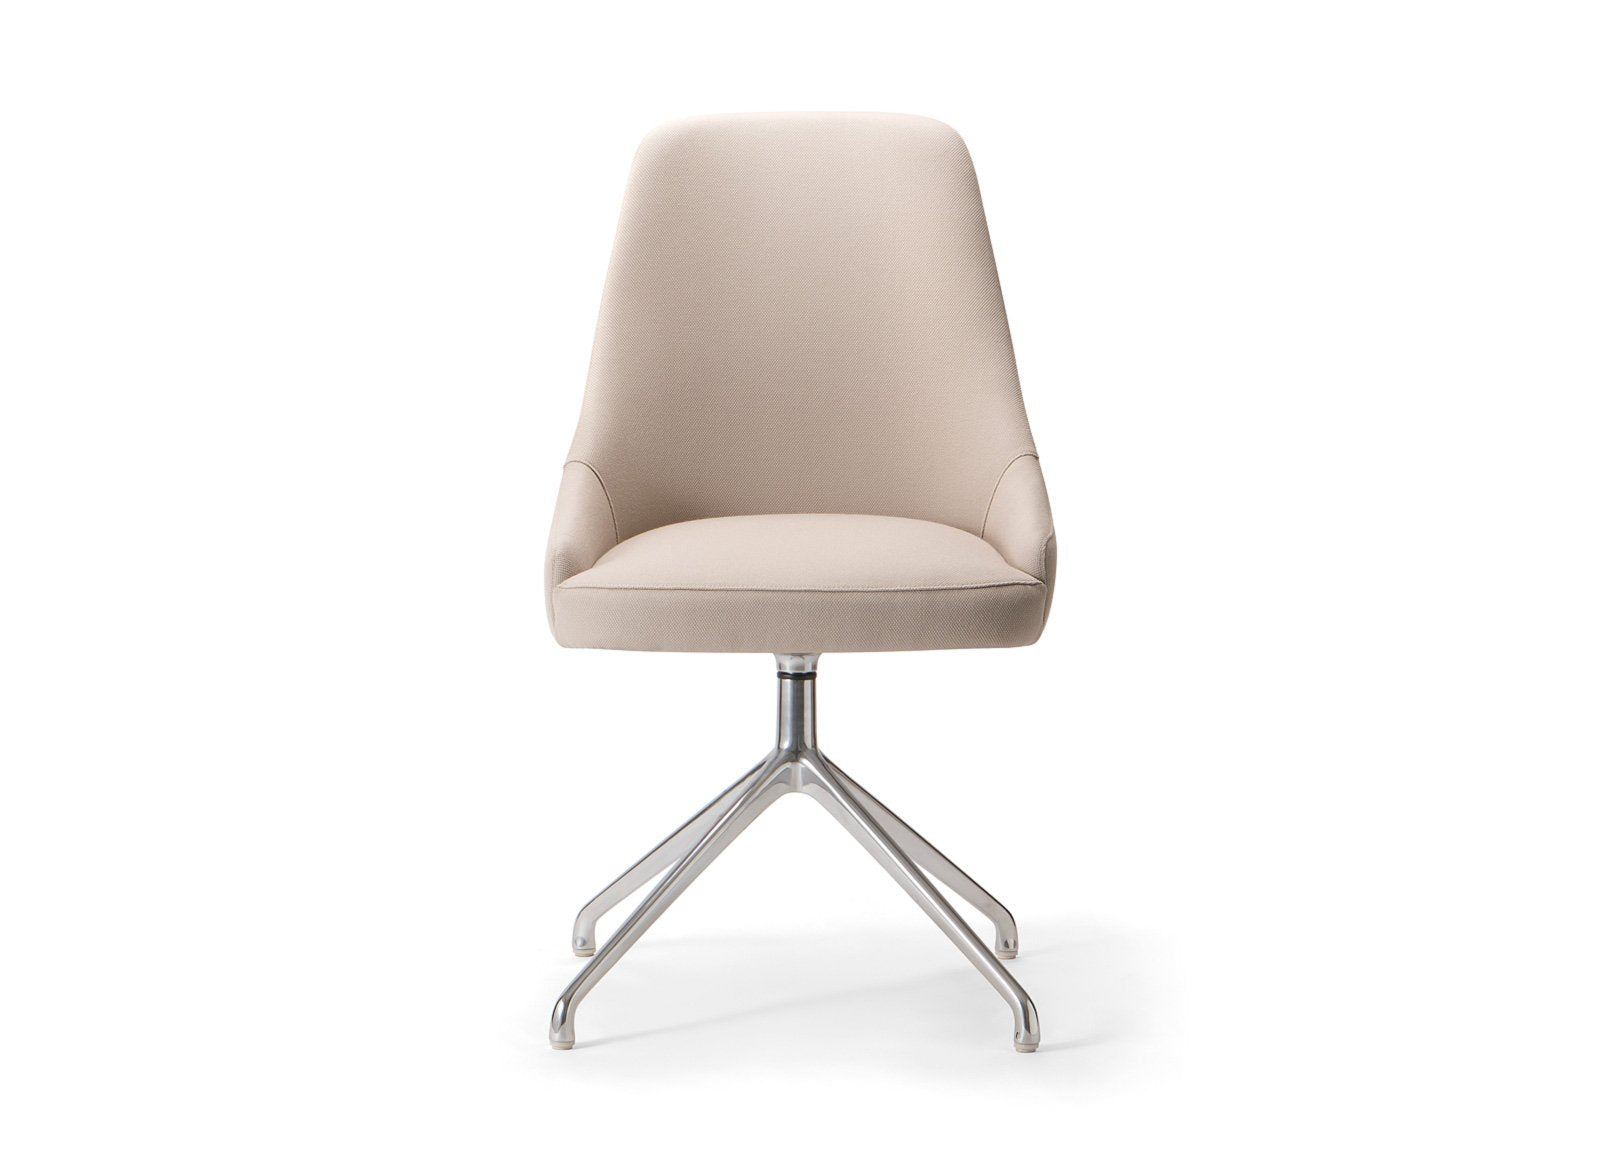 Adima 01 Side Chair c/w Spider Base-Torre-Contract Furniture Store